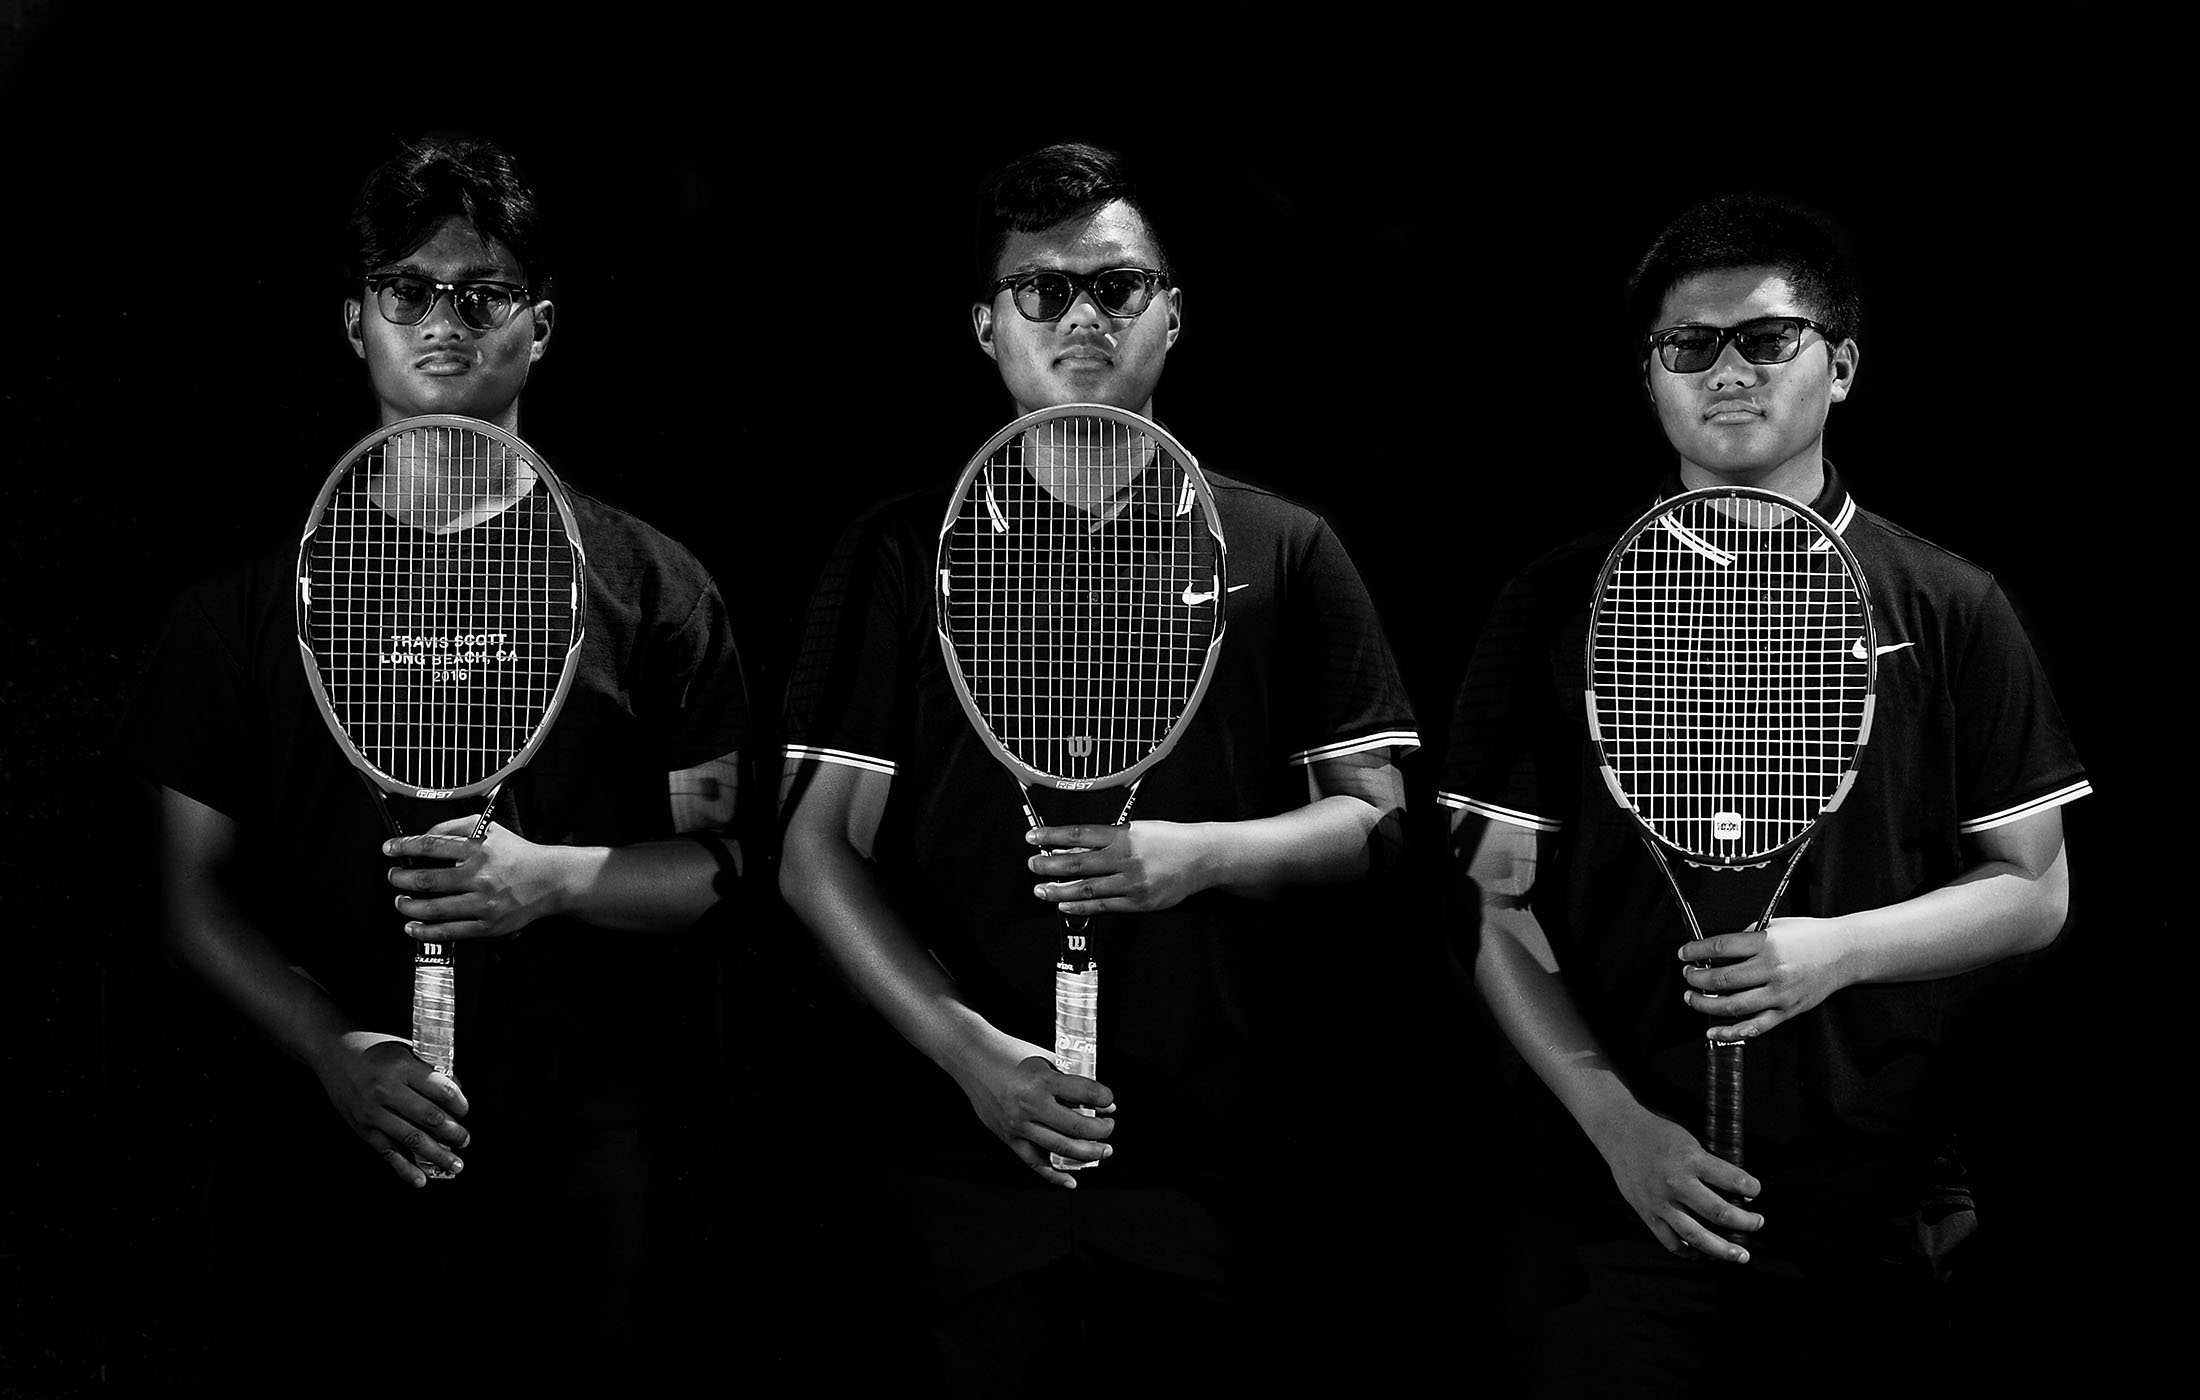 Tennis brothers from left Etiwanda's Clyde Siringoringo, 16, Junior, DeAndre Siringoringo, 18, Senior and Dwayne Siringoringo, 14, Freshman have the talent and  personalities as they lead the team to the playoffs Monday in Rancho Cucamonga, Calif. May 7, 2018.